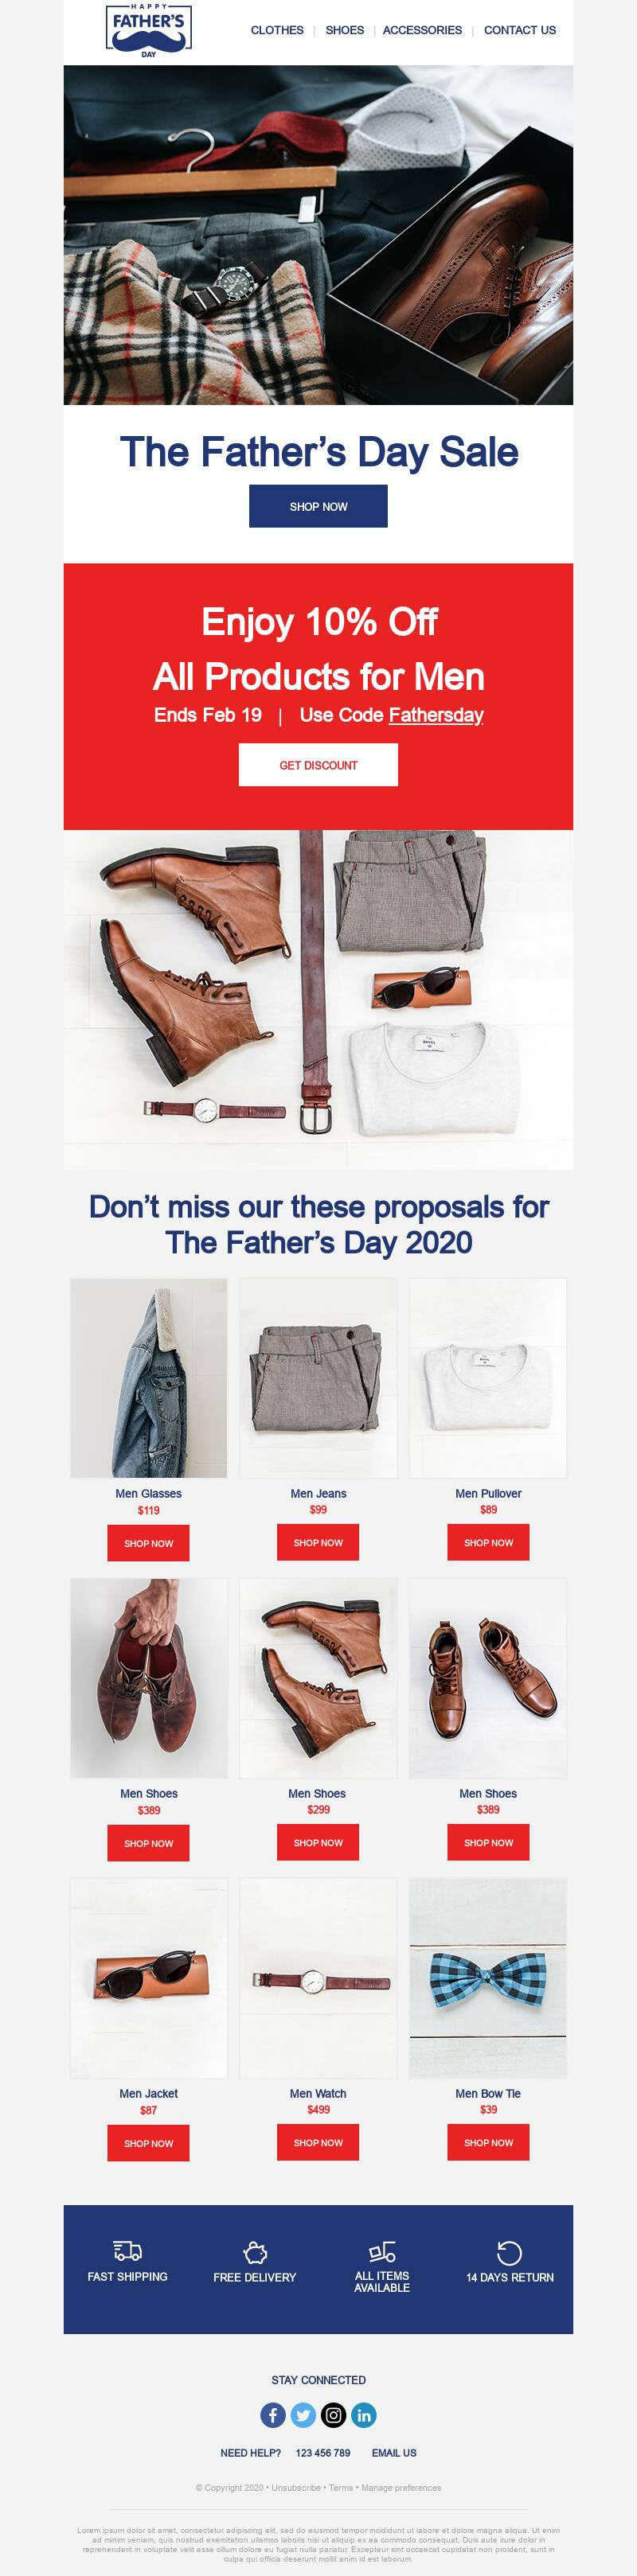 Father's Day email template